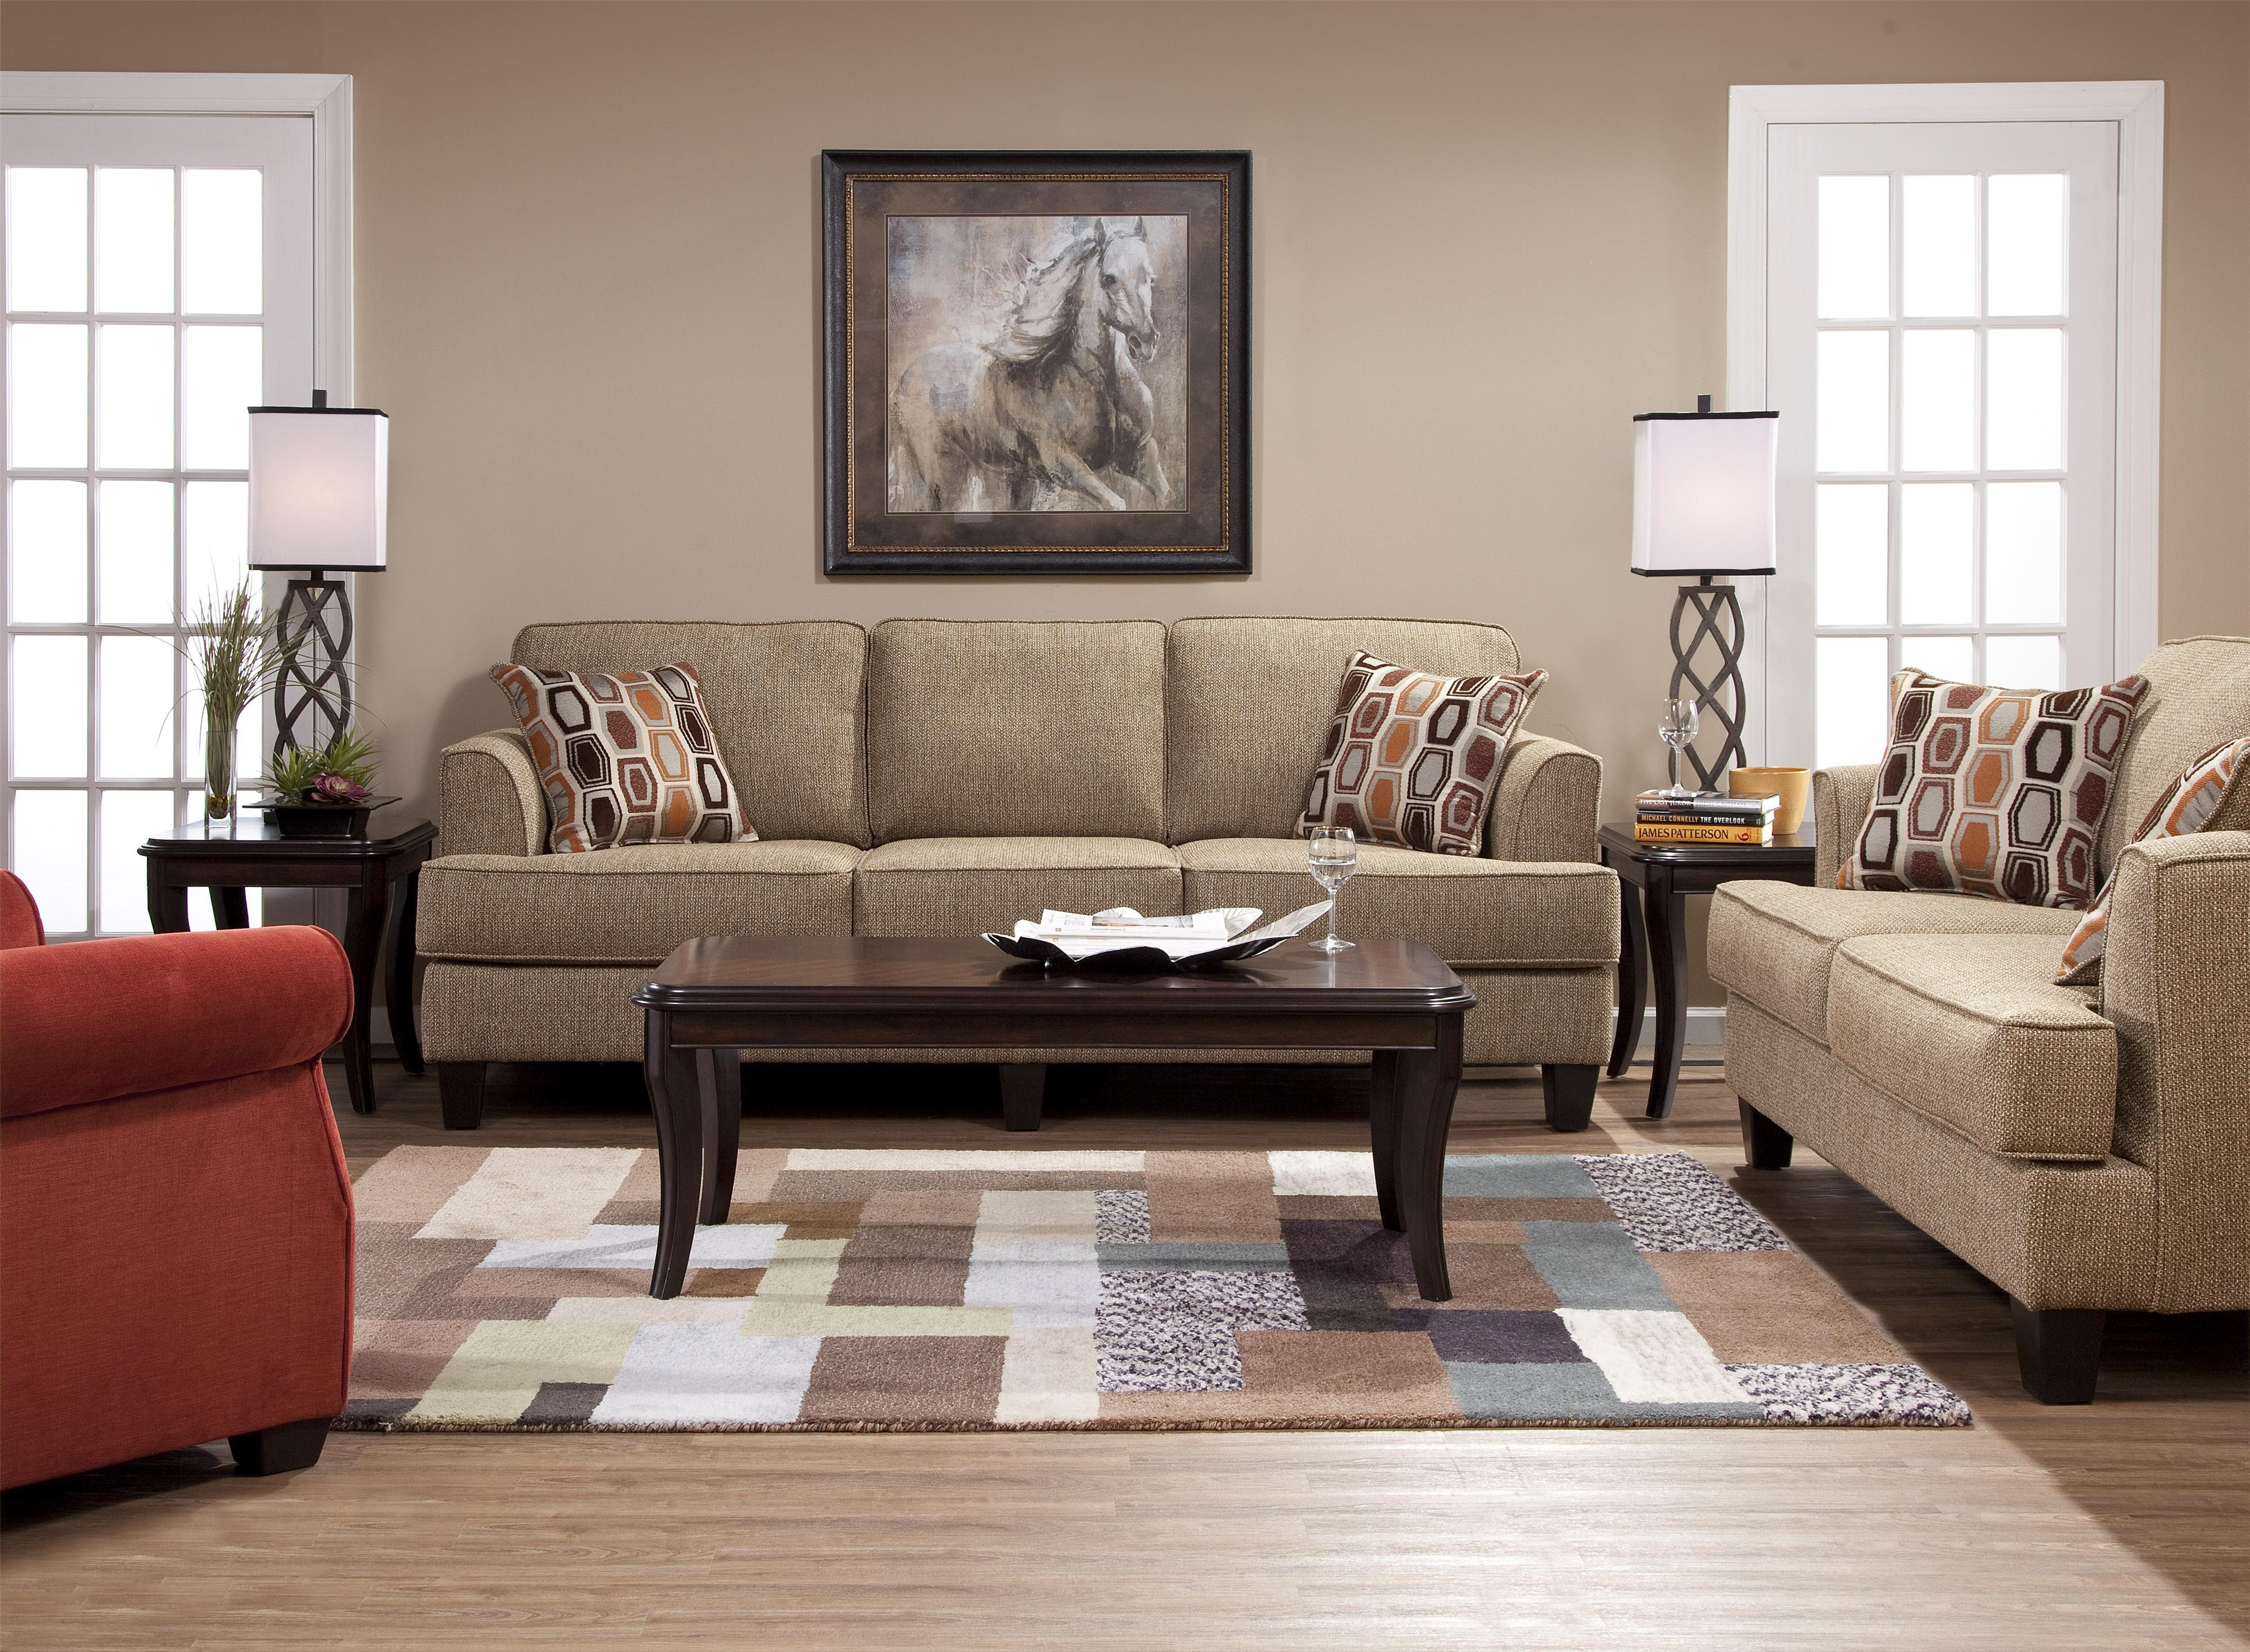 Serta Upholstery sofa Lovely Serta Upholstery by Hughes Furniture Stationary Living Room Inspiration